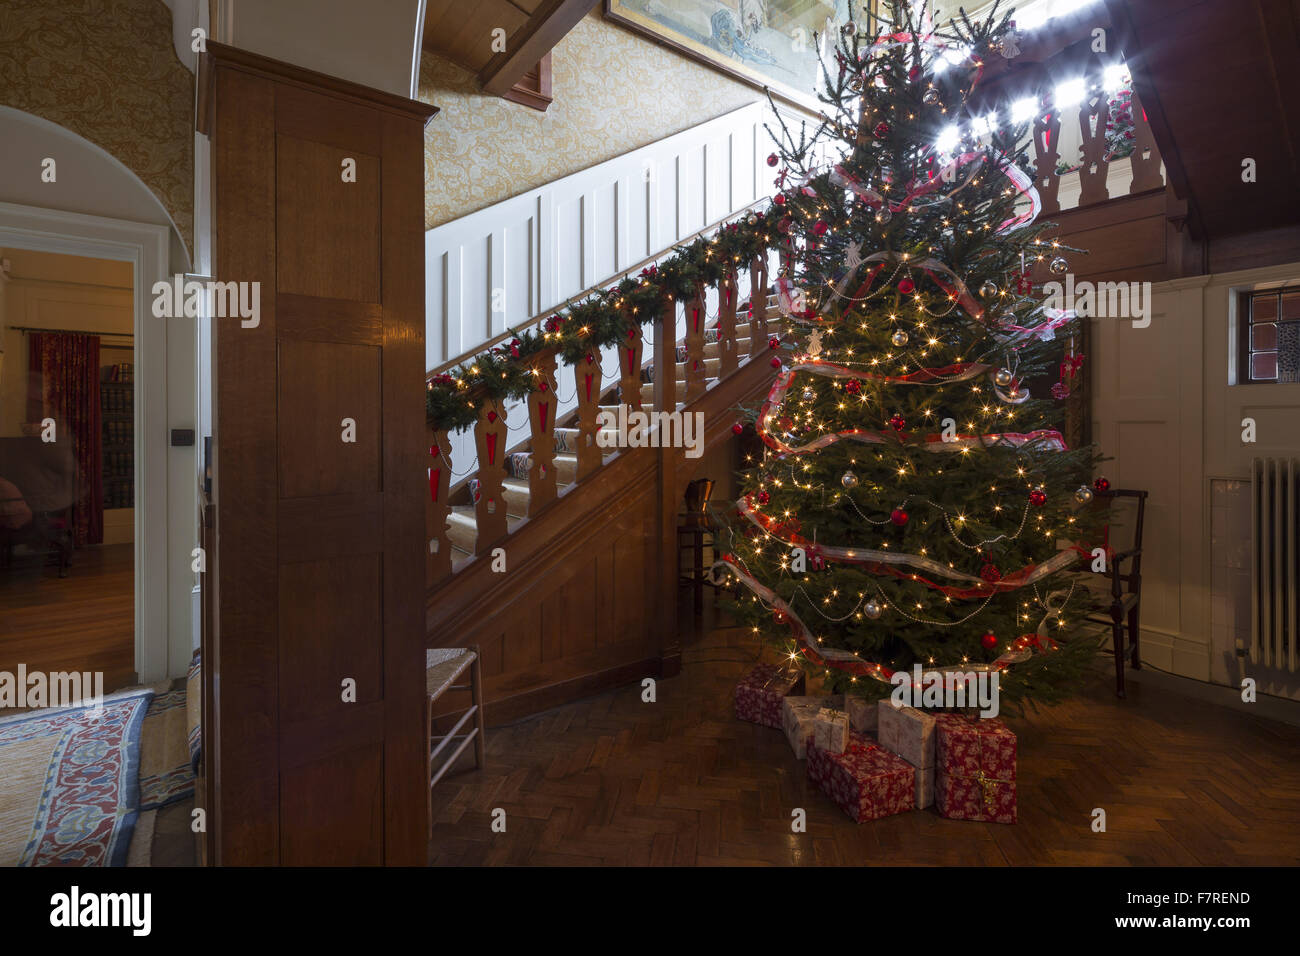 A Decorated Christmas Tree In The Staircase Hall At Standen House And Garden West Sussex